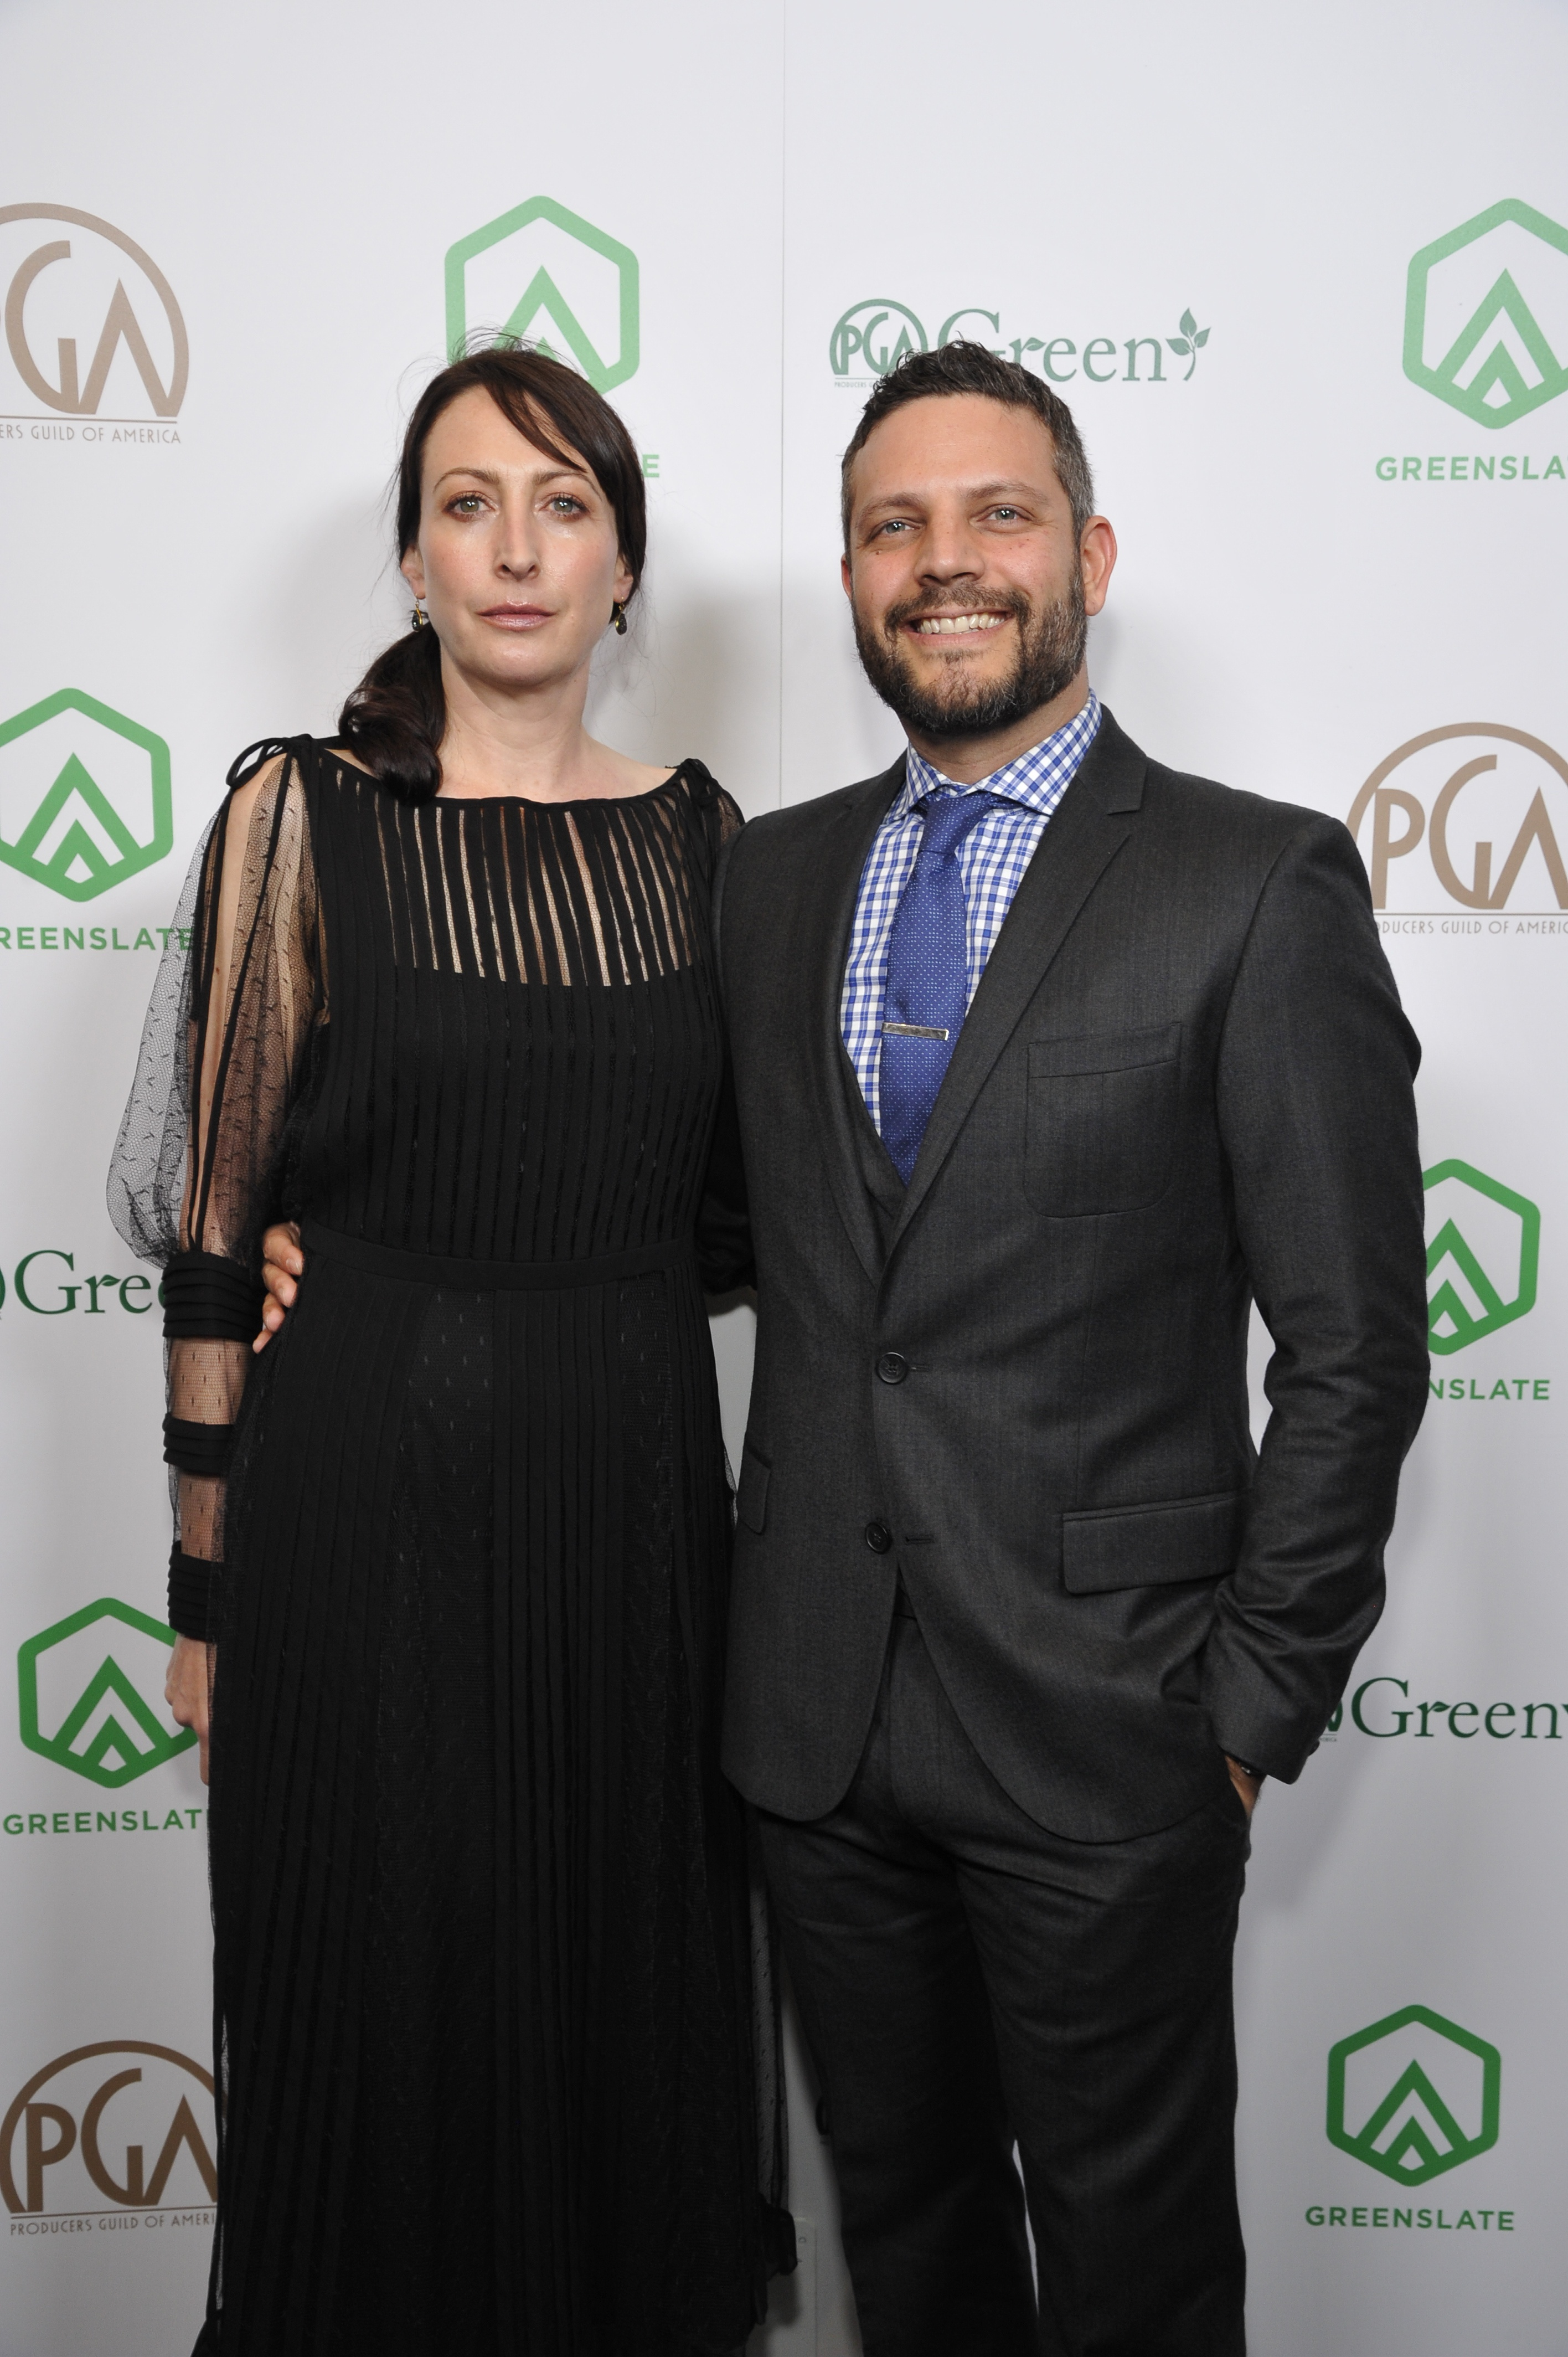 Producers Carissa Buffel and Kevin Matusow attend the 29th Annual Producers Guild Awards supported by GreenSlate at The Beverly Hilton Hotel on January 20, 2018 in Beverly Hills, California. (Photo by John Sciulli/Getty Images for GreenSlate)